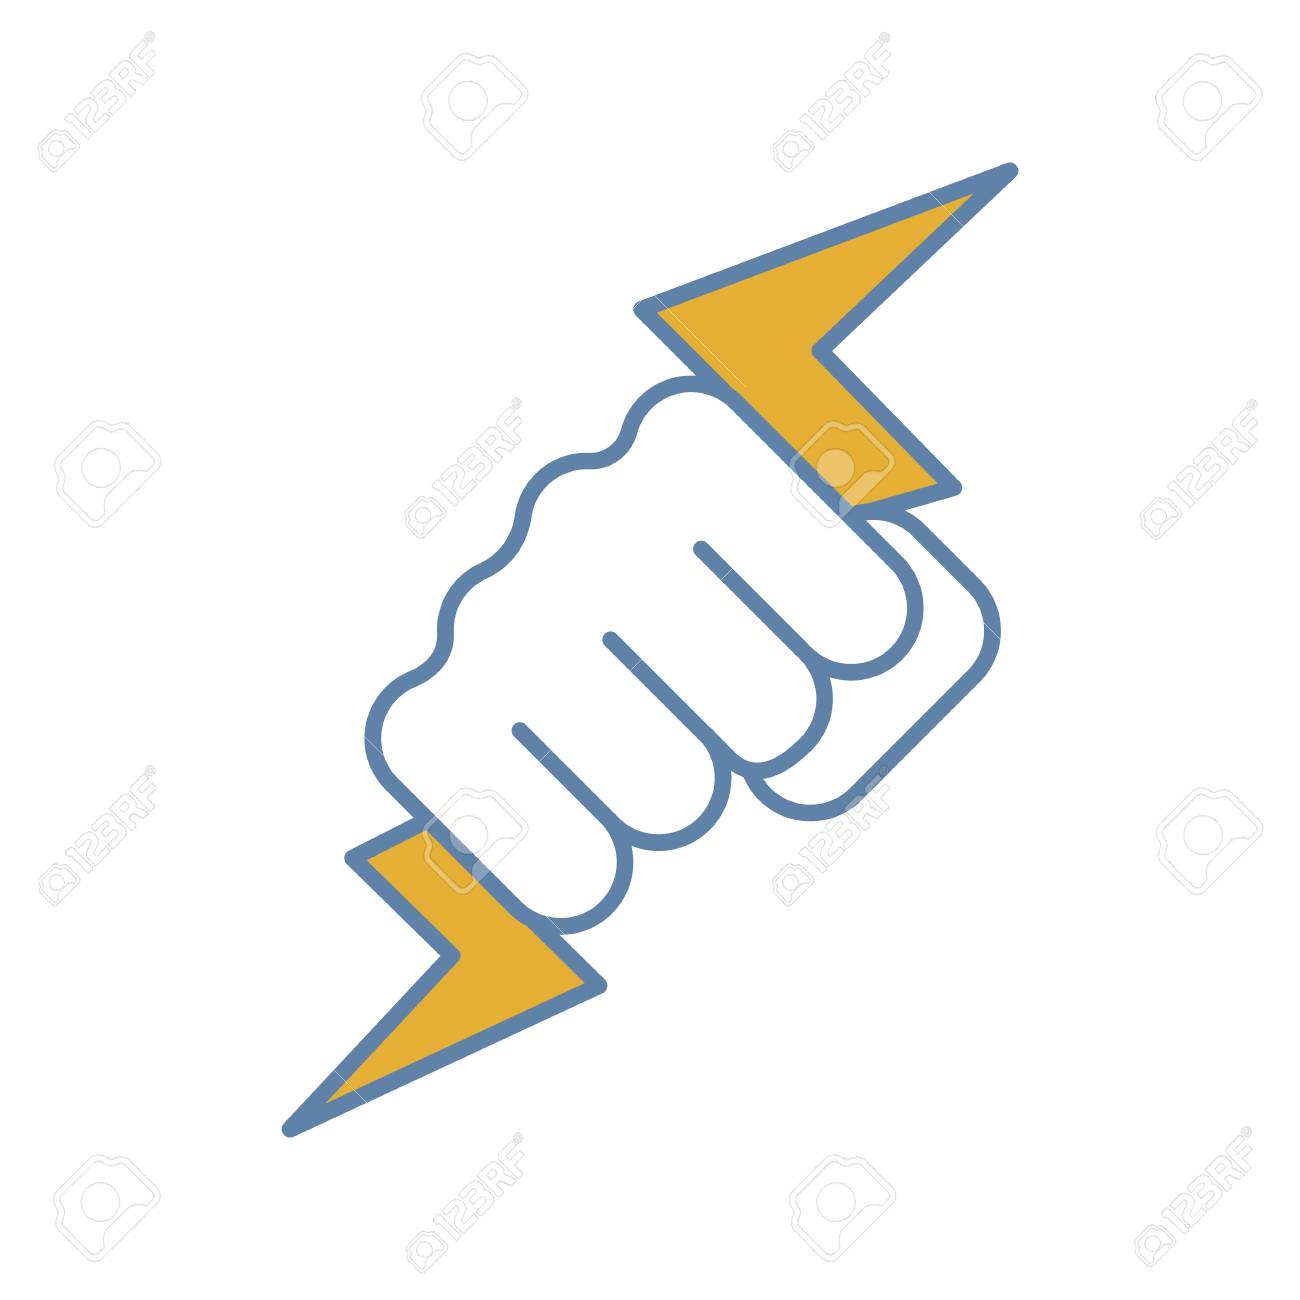 Hand Holding Lightning Bolt Color Icon Power Fist Electric Royalty Free Cliparts Vectors And Stock Illustration Image 107531008